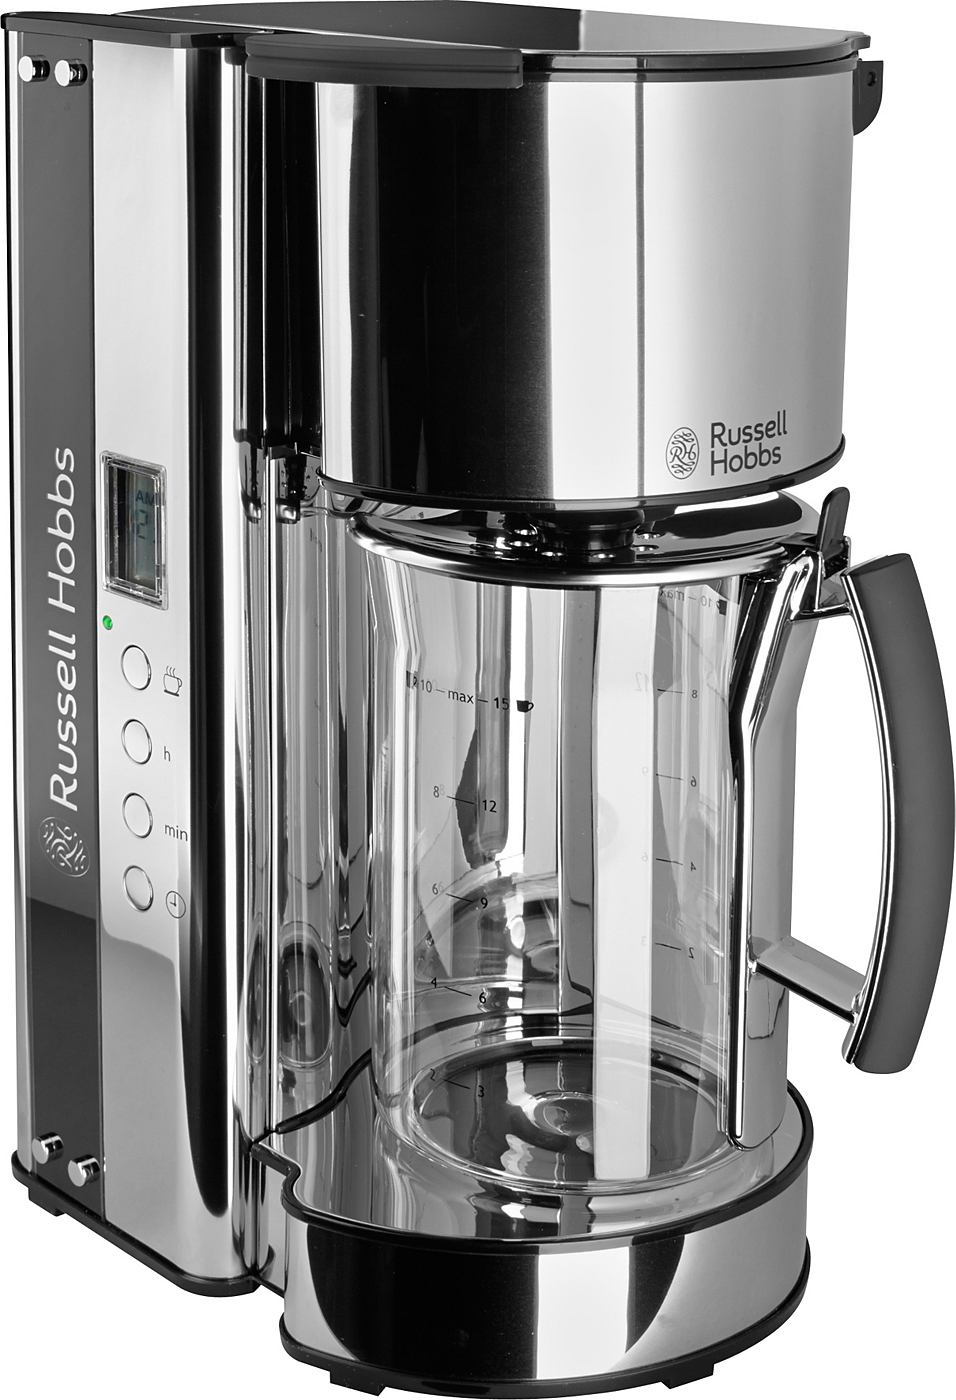 russell hobbs glas kaffeemaschine black glass 19650 56 1090 watt. Black Bedroom Furniture Sets. Home Design Ideas